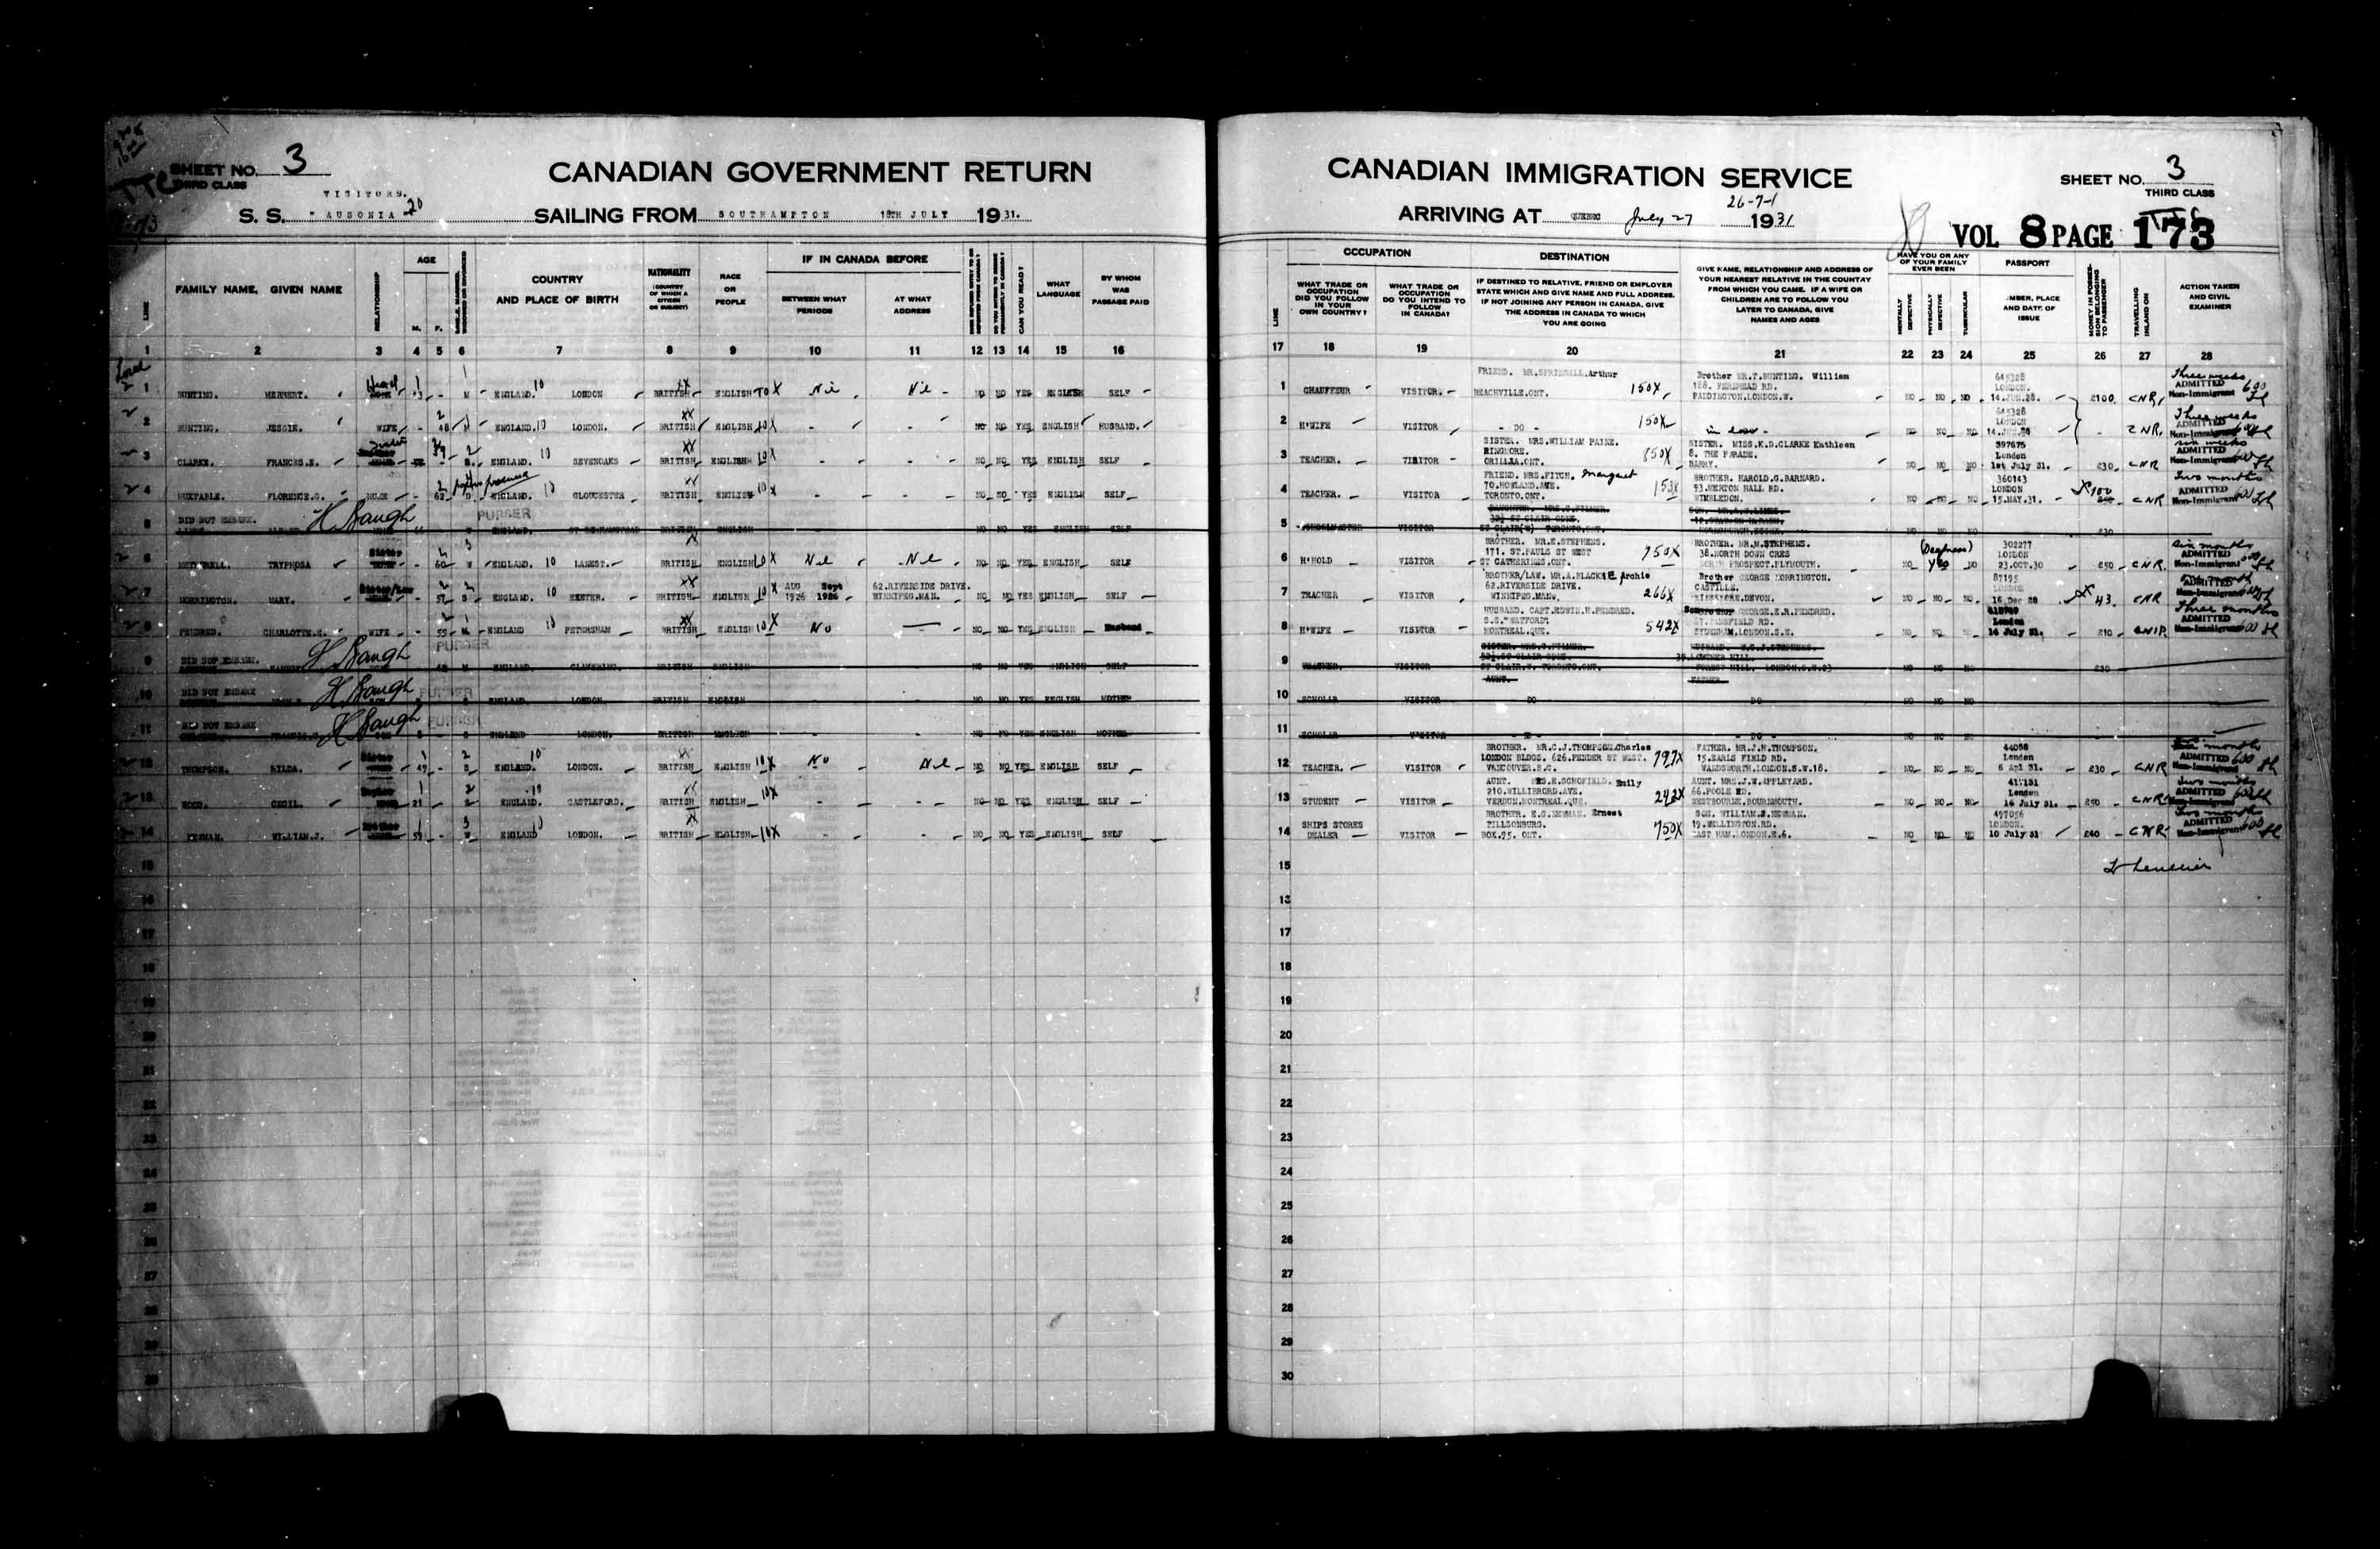 Title: Passenger Lists: Quebec City (1925-1935) - Mikan Number: 134839 - Microform: t-14774